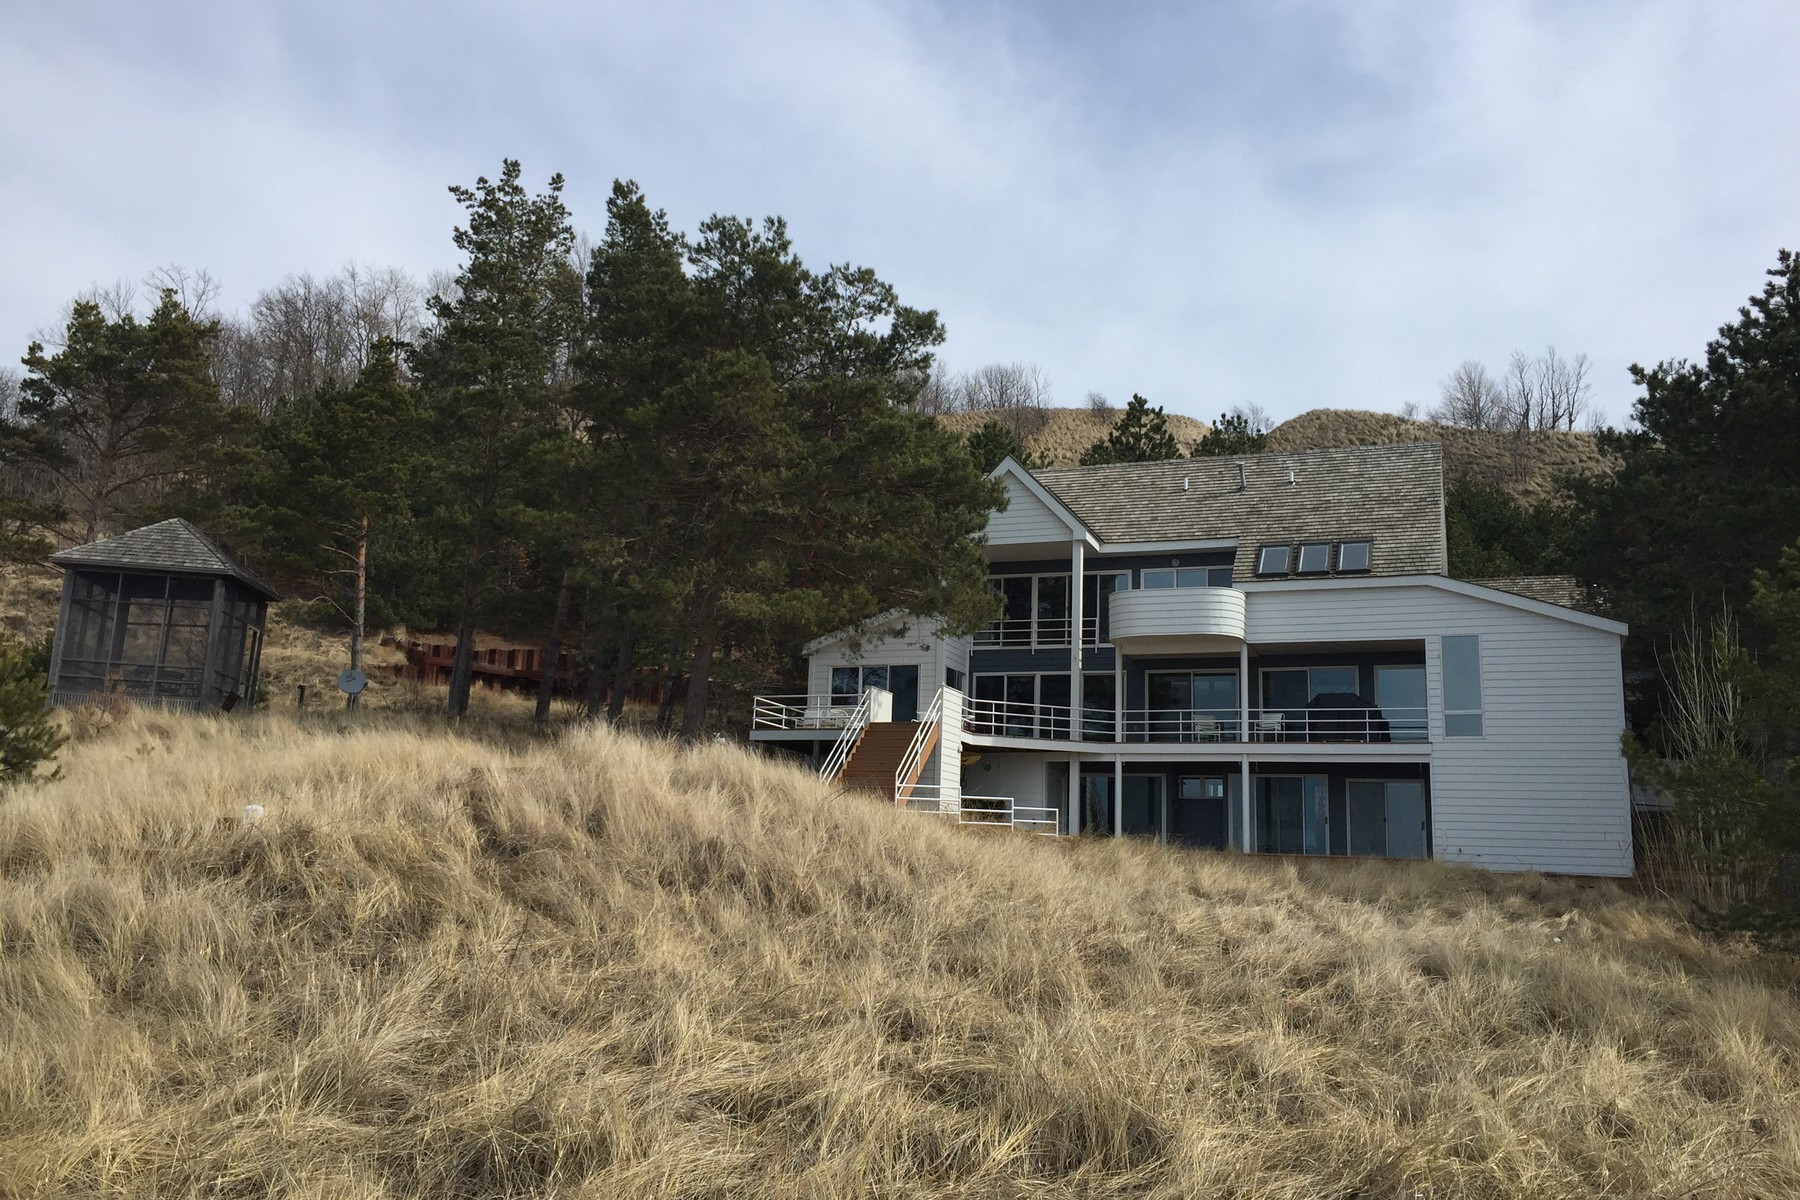 Vivienda unifamiliar por un Venta en Wilderness Dunes 40240 Wilderness Dunes Covert, Michigan, 49043 Estados Unidos